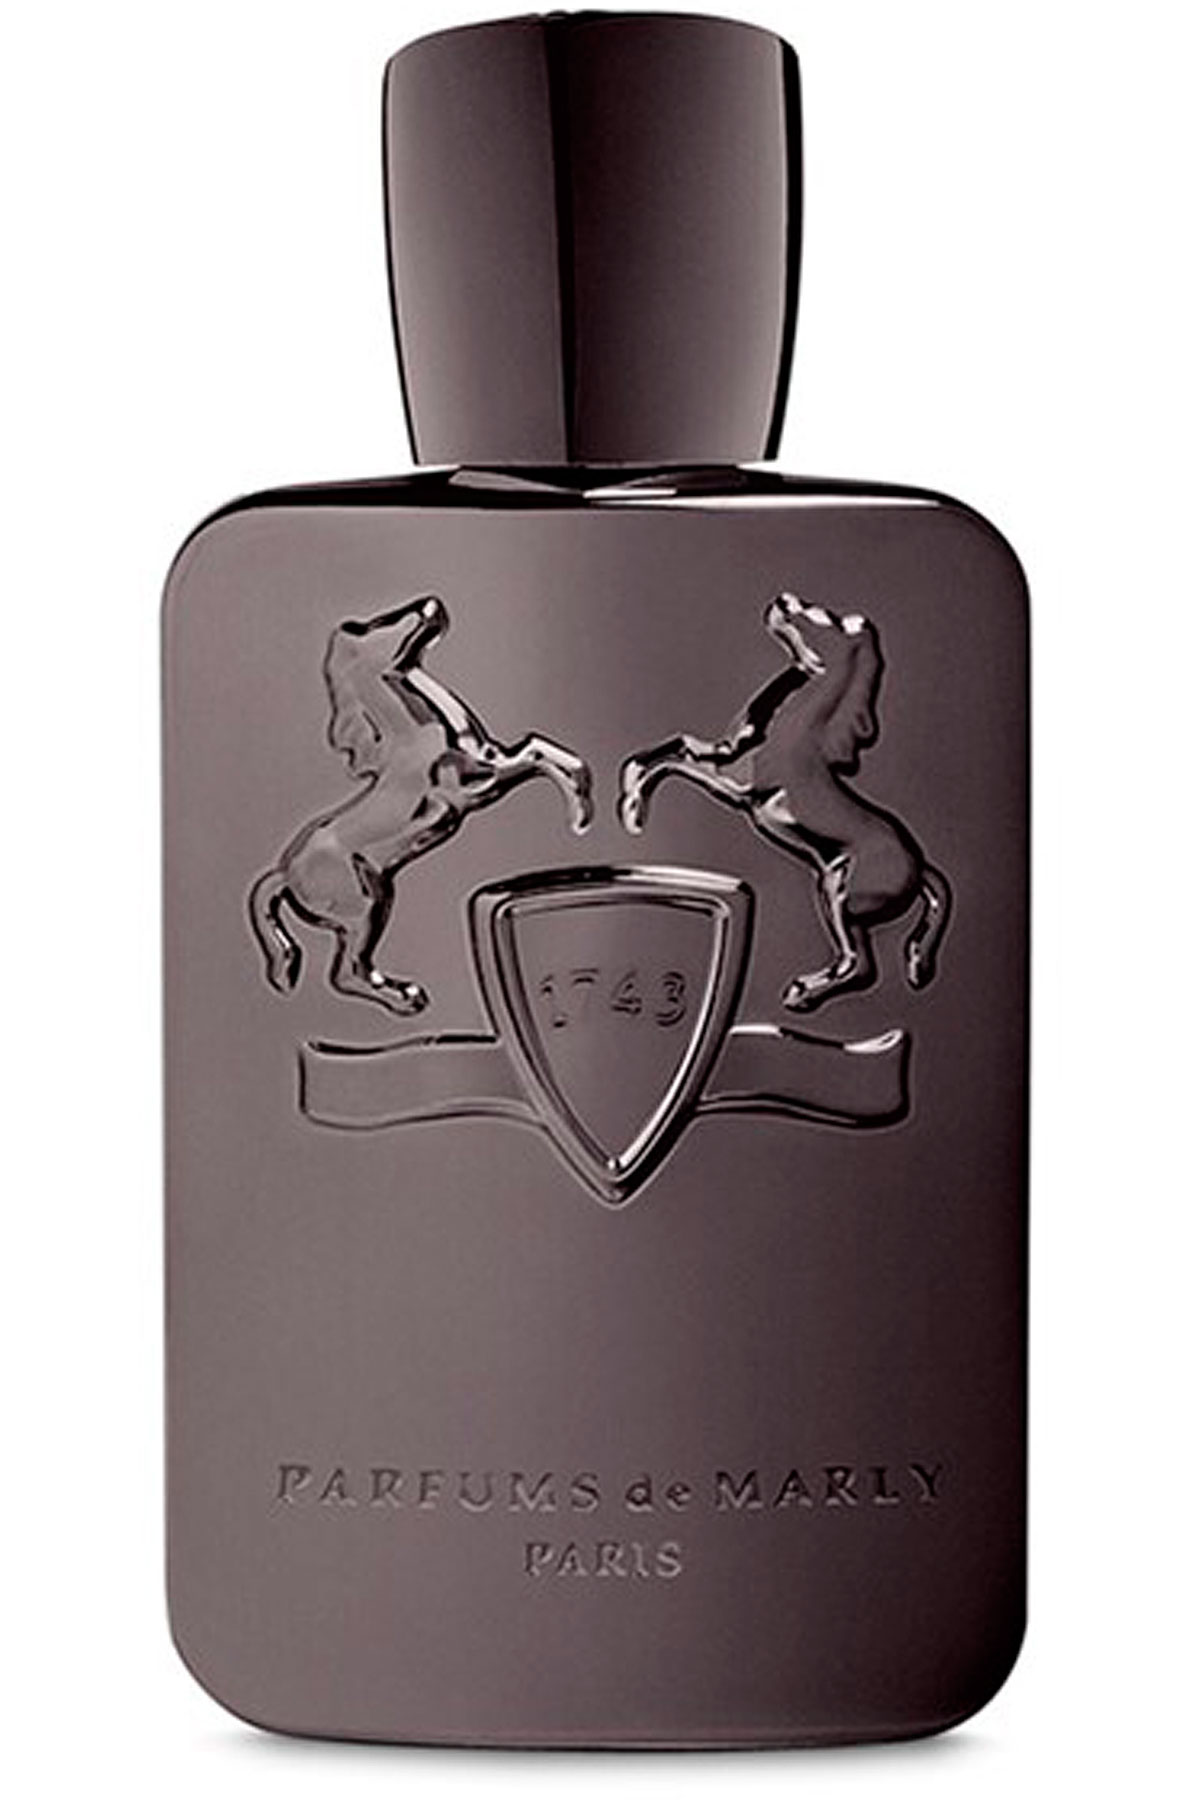 Parfums de Marly Fragrances for Men, Herod - Eau De Parfum - 75-125 Ml, 2019, 75 ml 125 ml